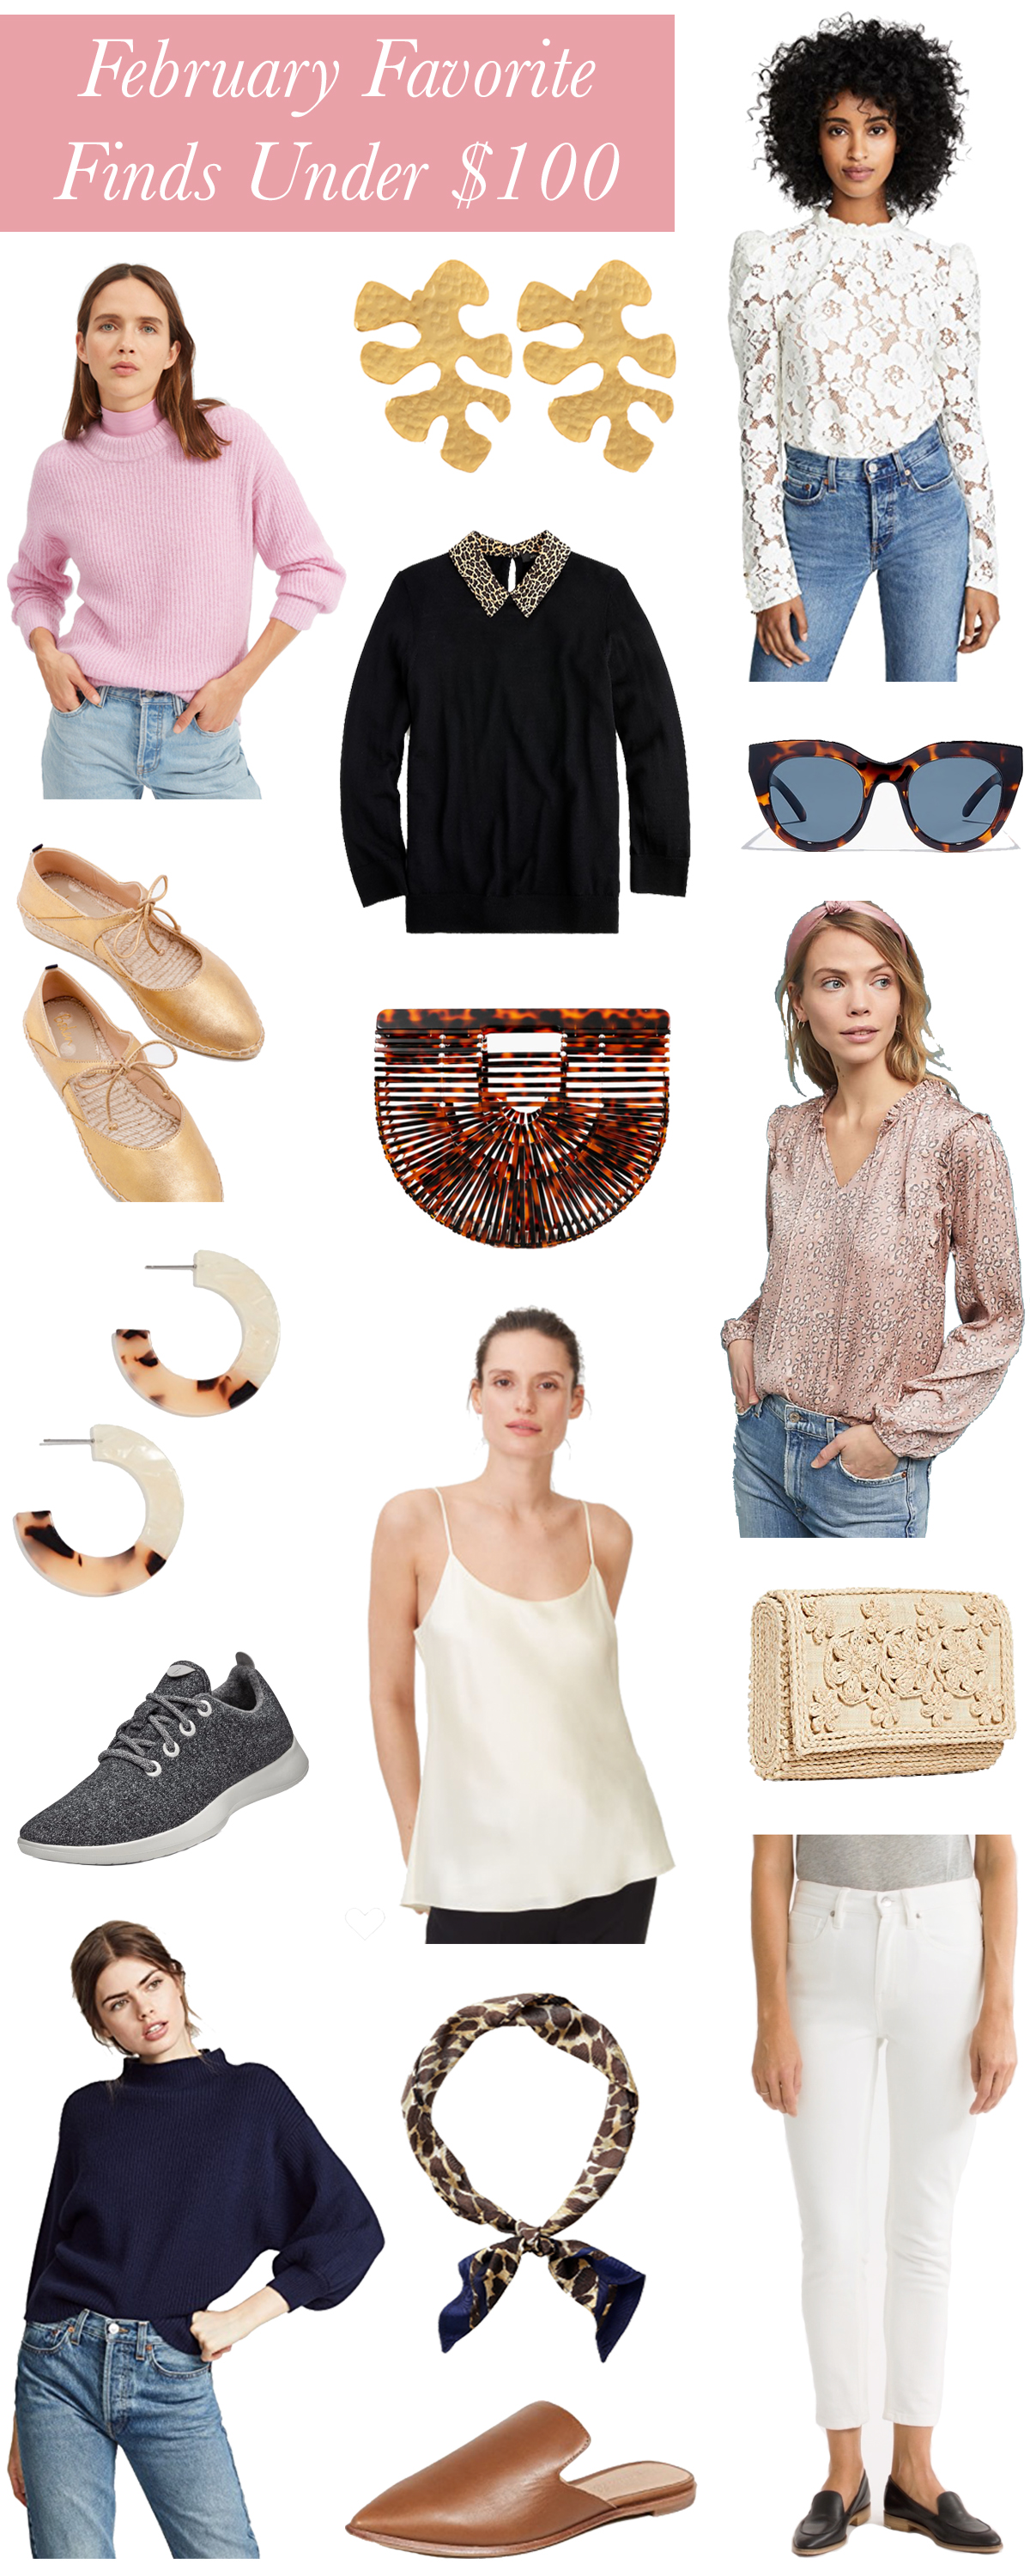 What to shop for under $100 in February + February 2019 Favorite Finds Under $100 | Rhyme & Reason